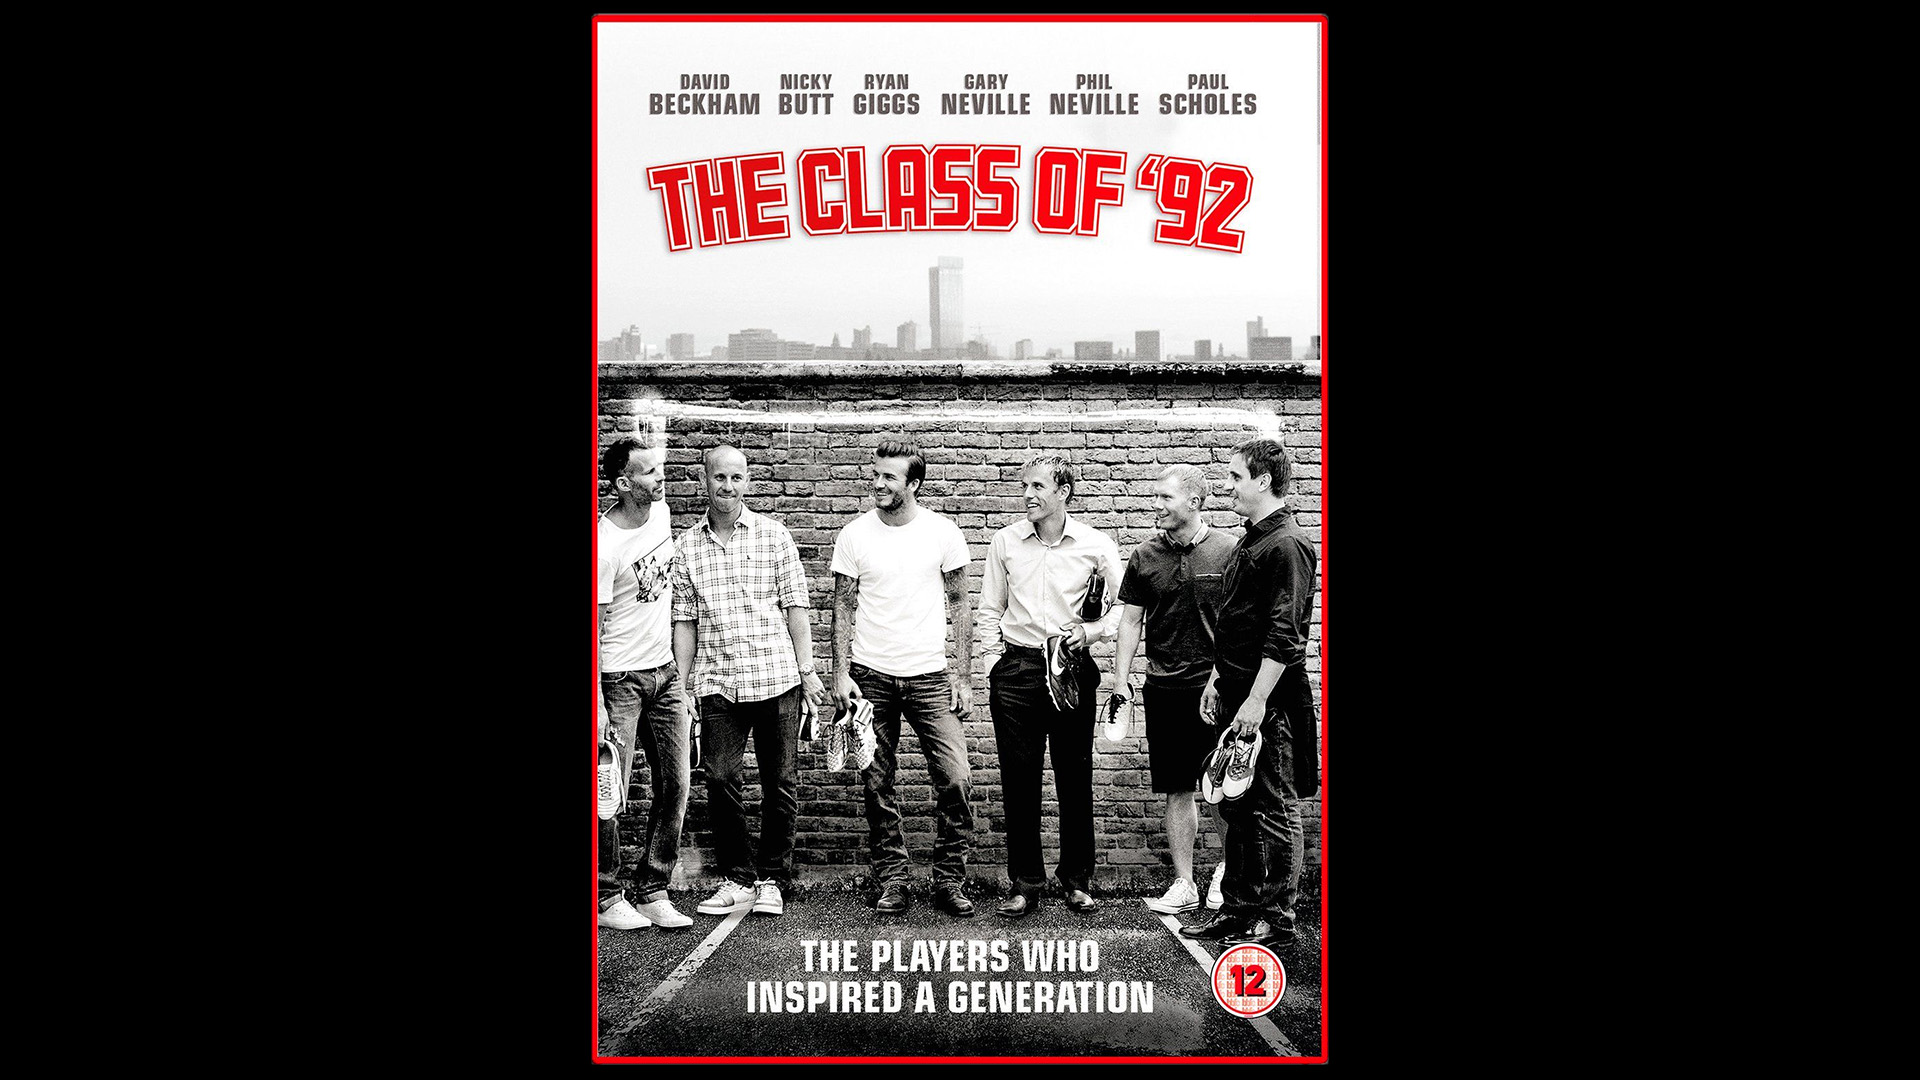 Highlights of Thinking Football (III): 'The Class of '92'